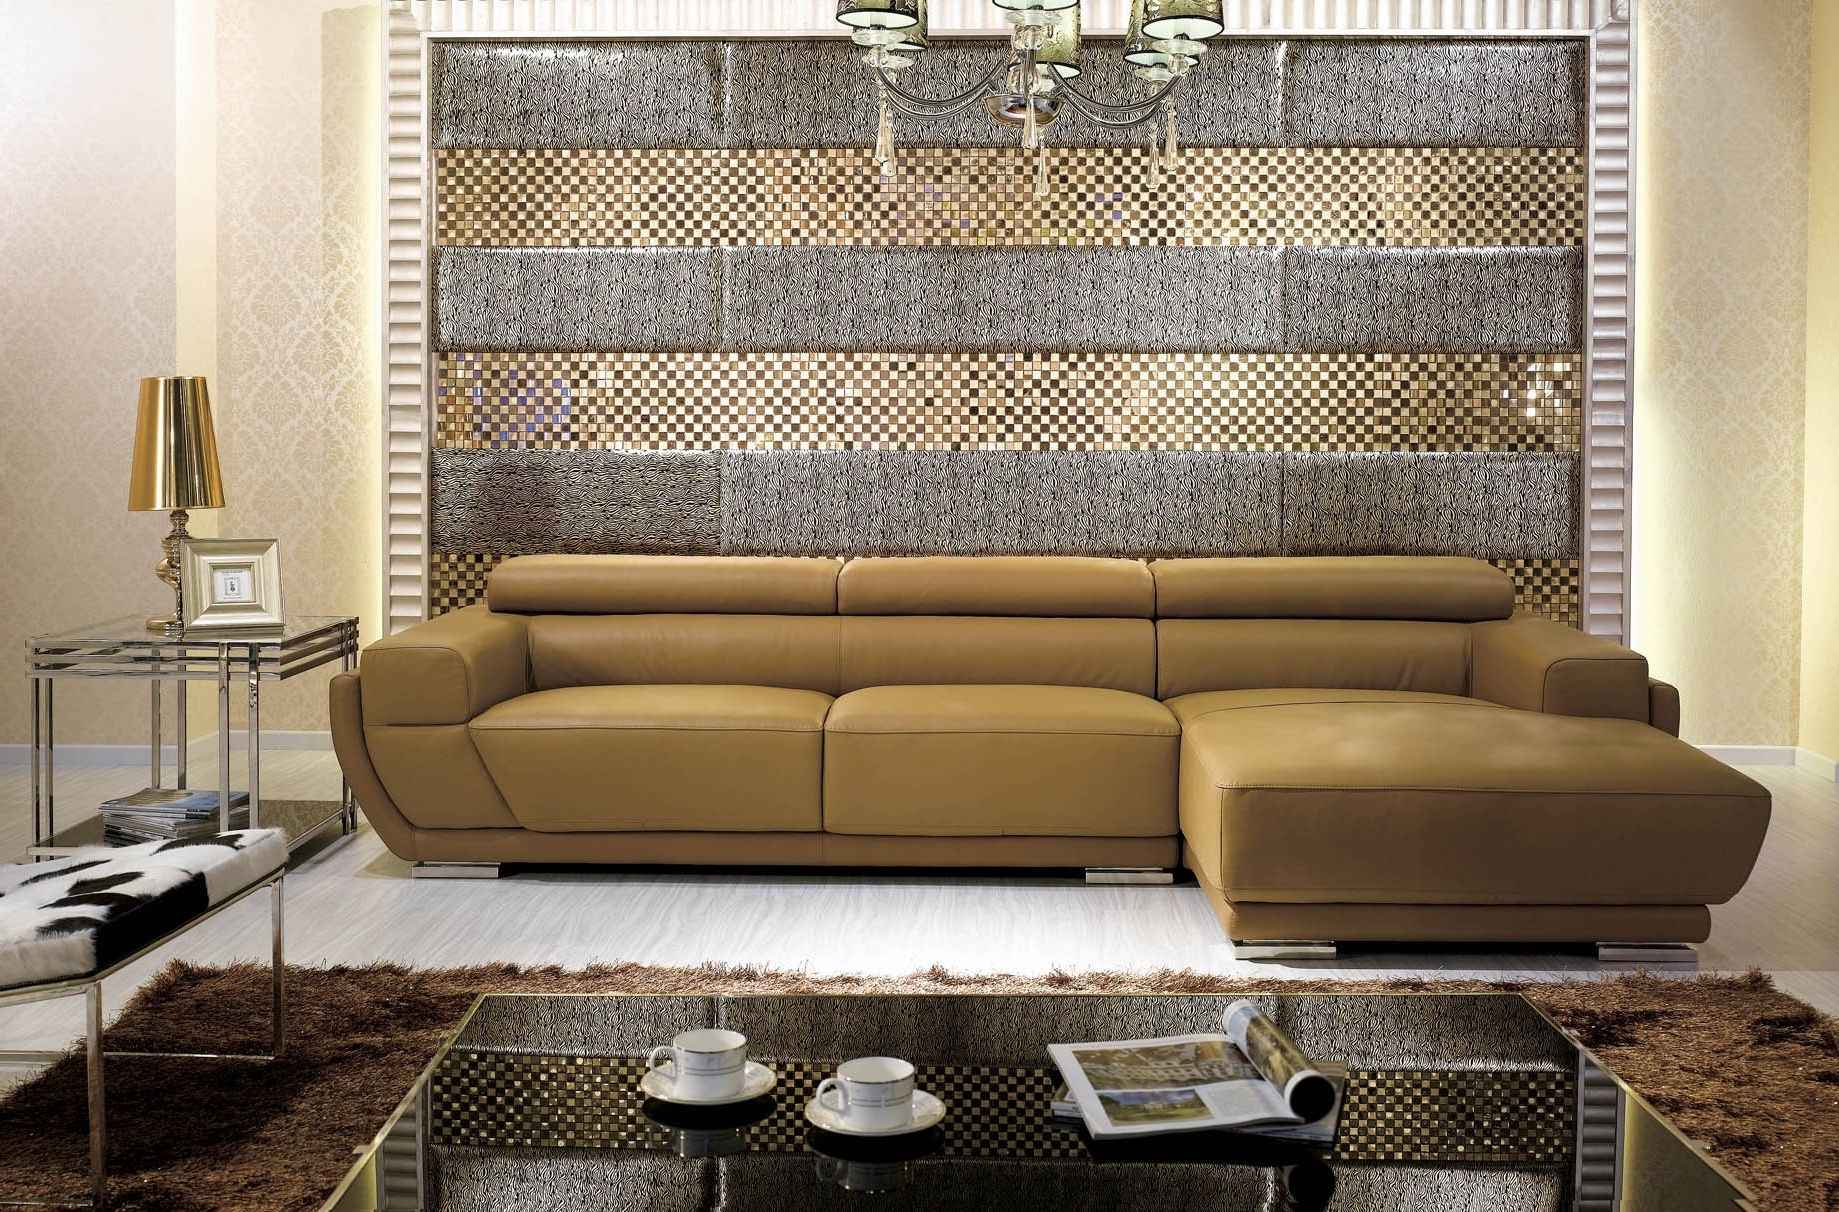 Well Liked Camel Colored Sectional Sofas With Regard To K8300 Modern Camel Italian Leather Sectional Sofa (View 5 of 20)